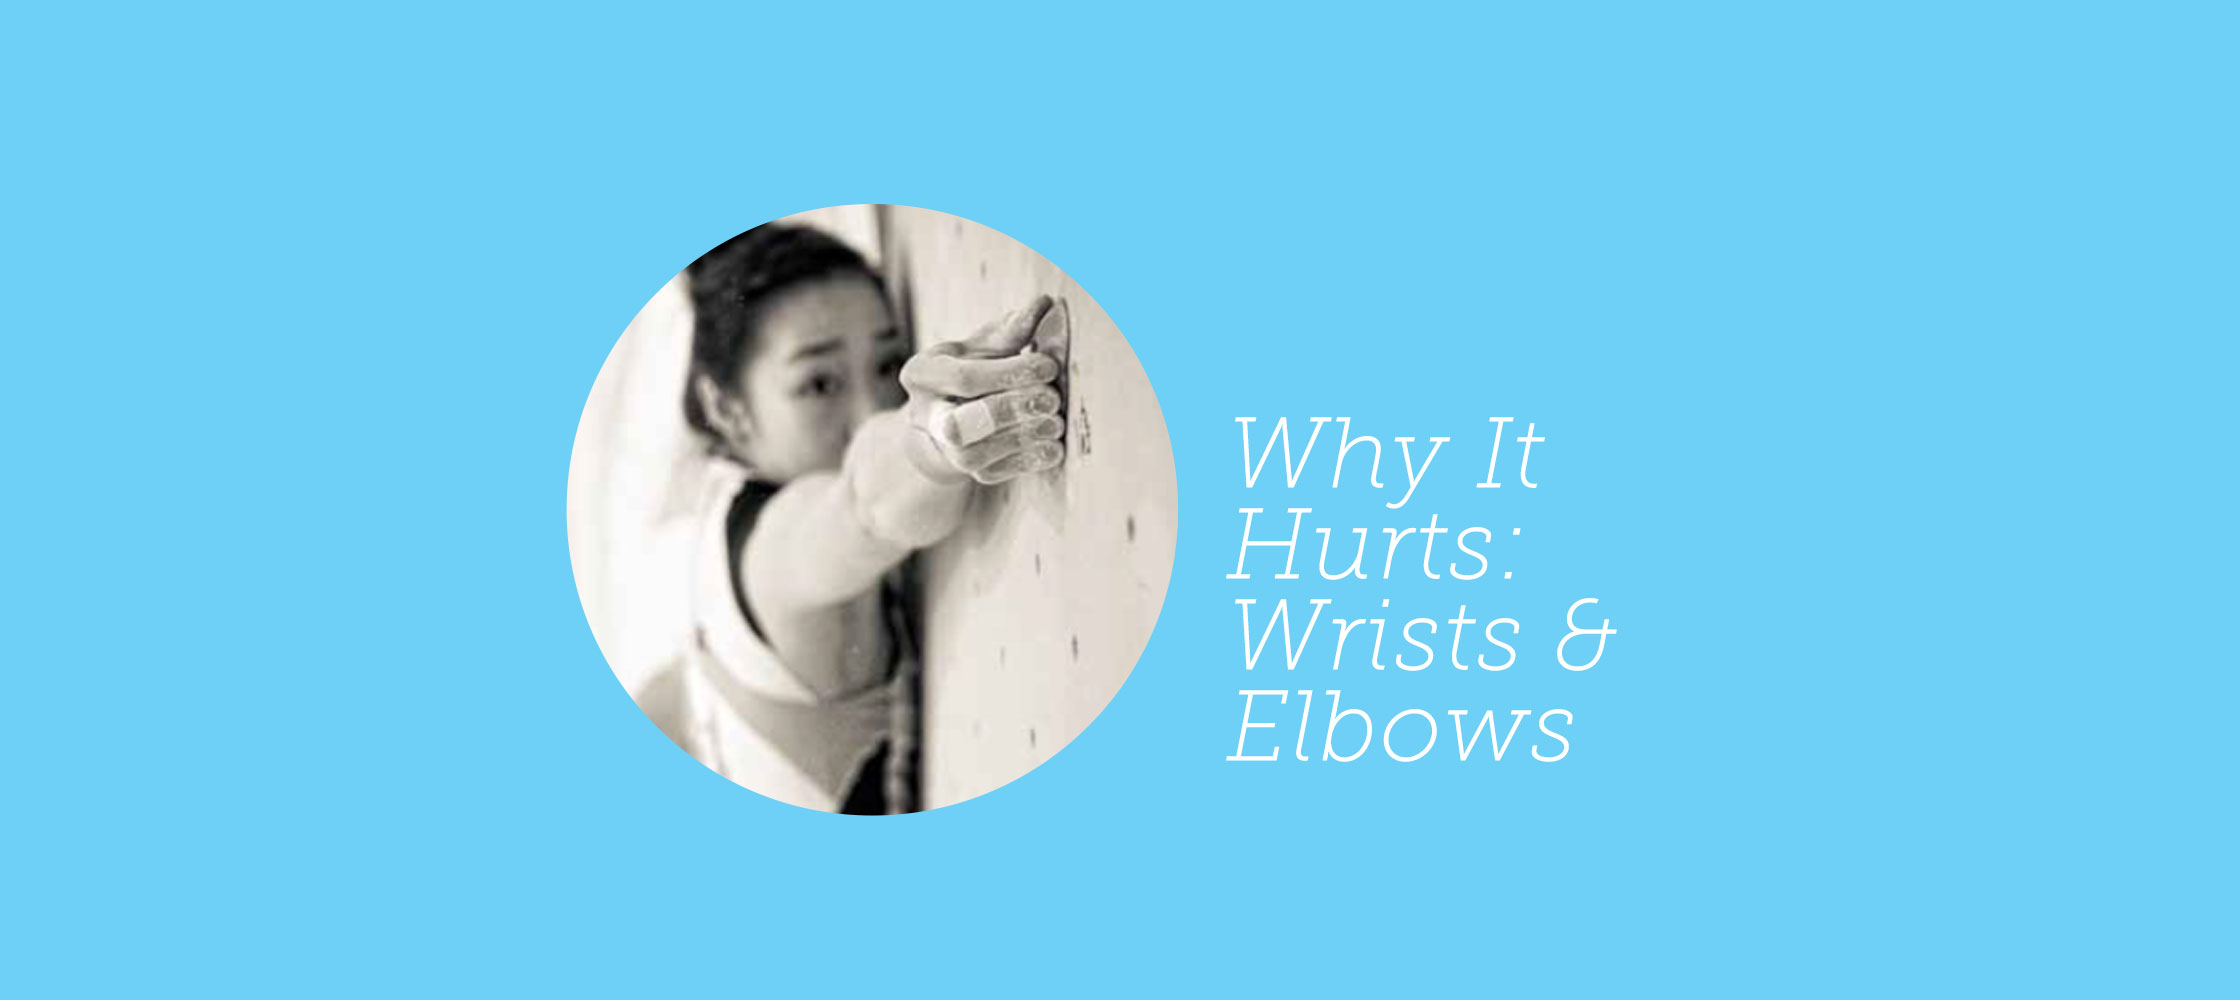 197-why-it-hurts-wrists-elbows